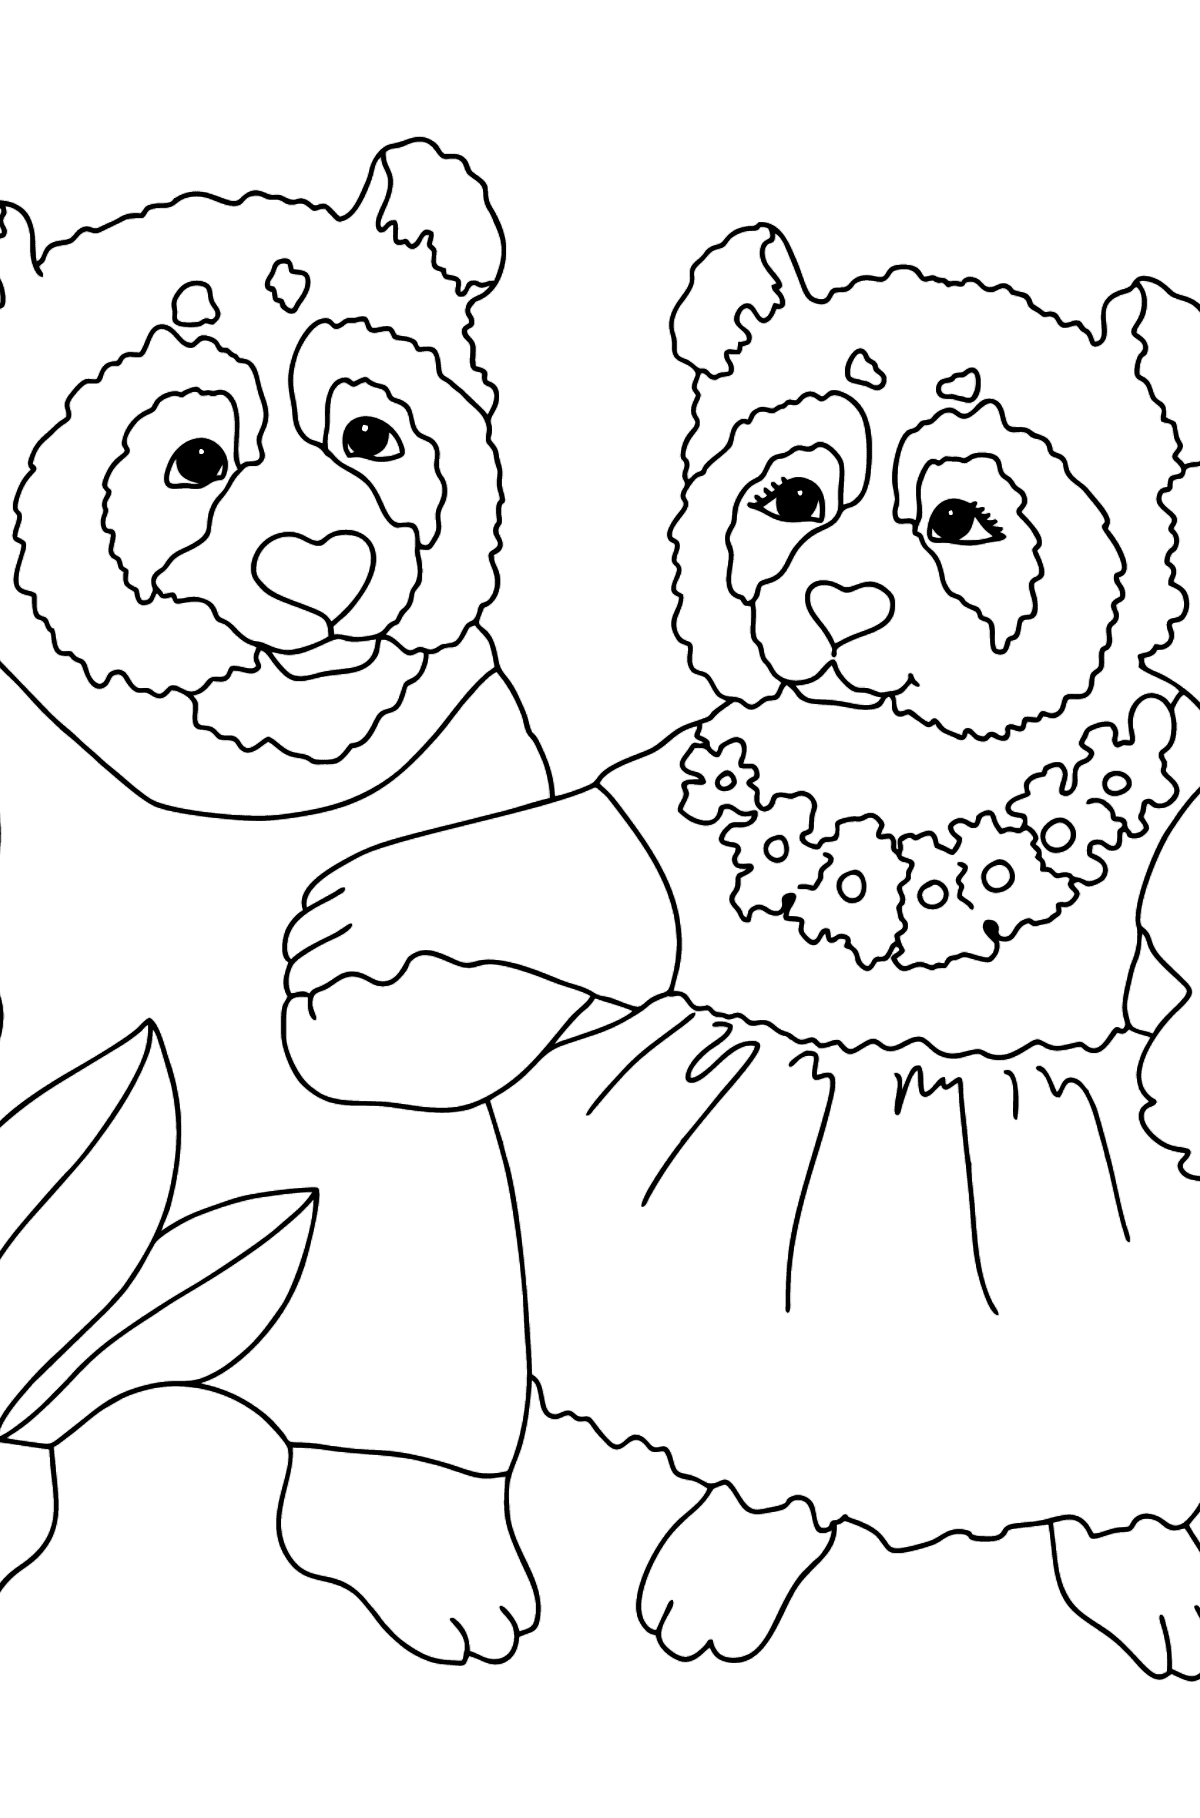 Coloring Page - Pandas are Having a Rest - Coloring Pages for Kids